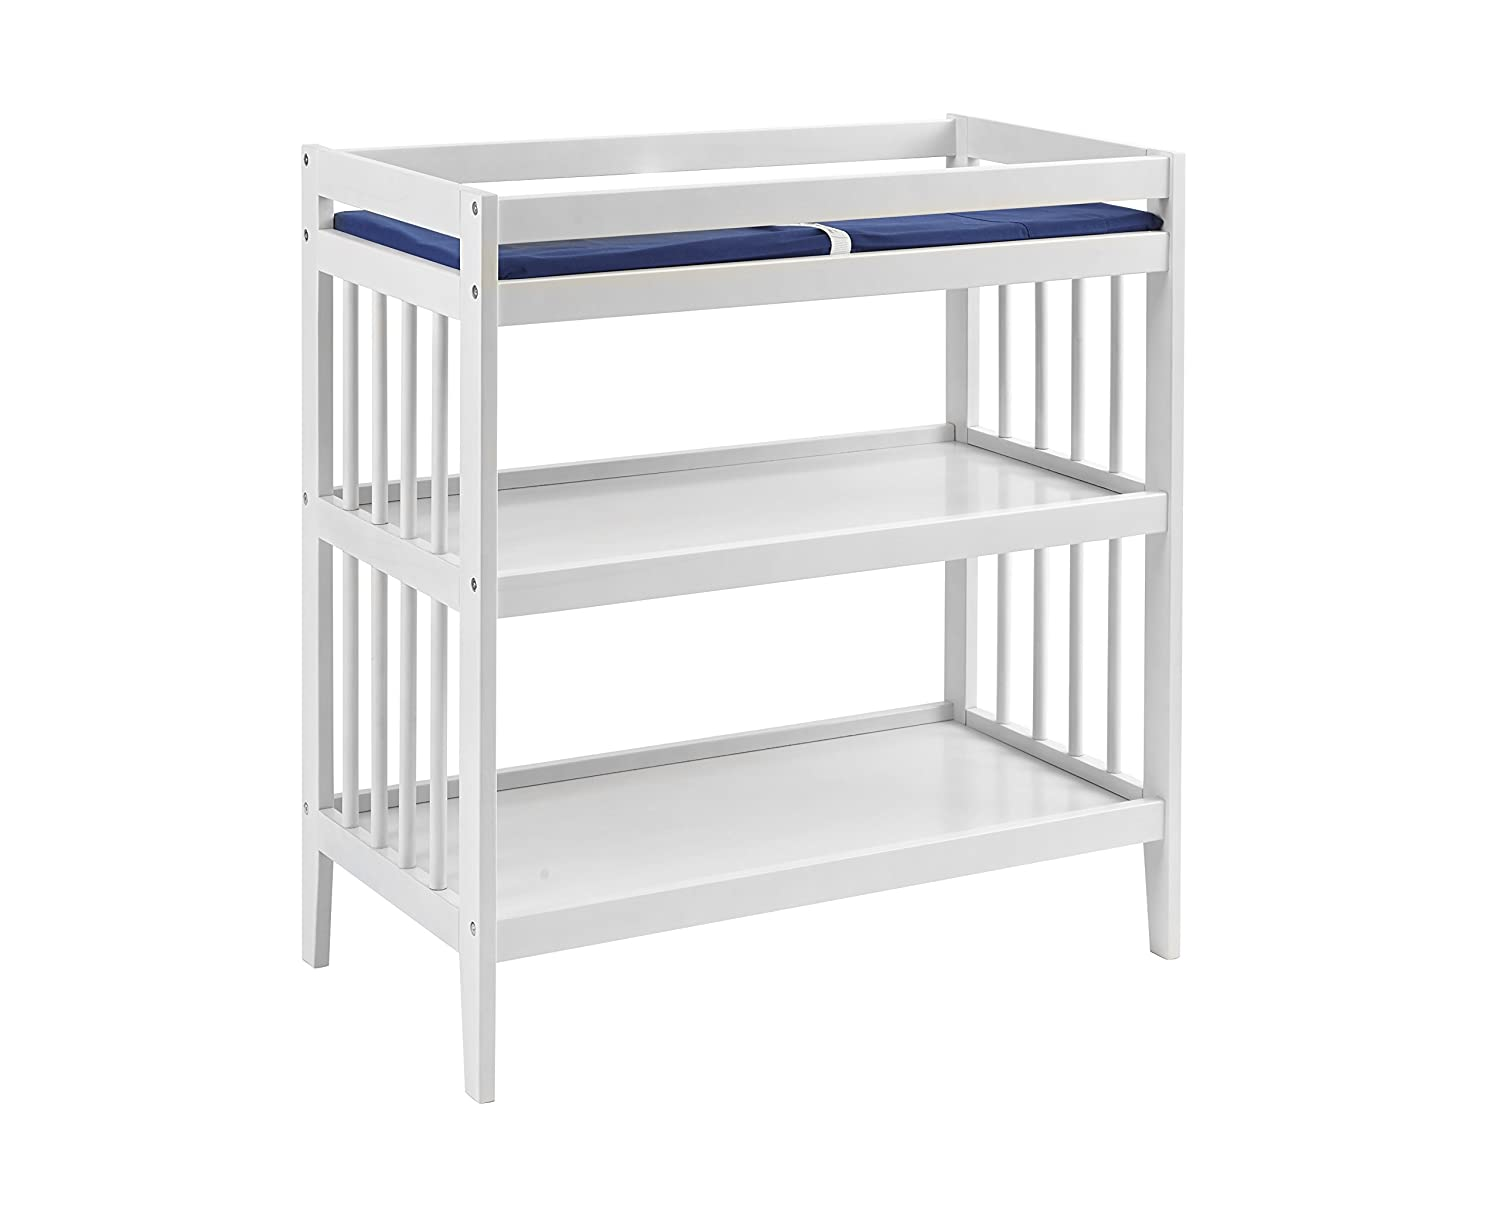 Westwood Design Echo Changing Table with Pad, Natural EC-CG-5117CT-NAT